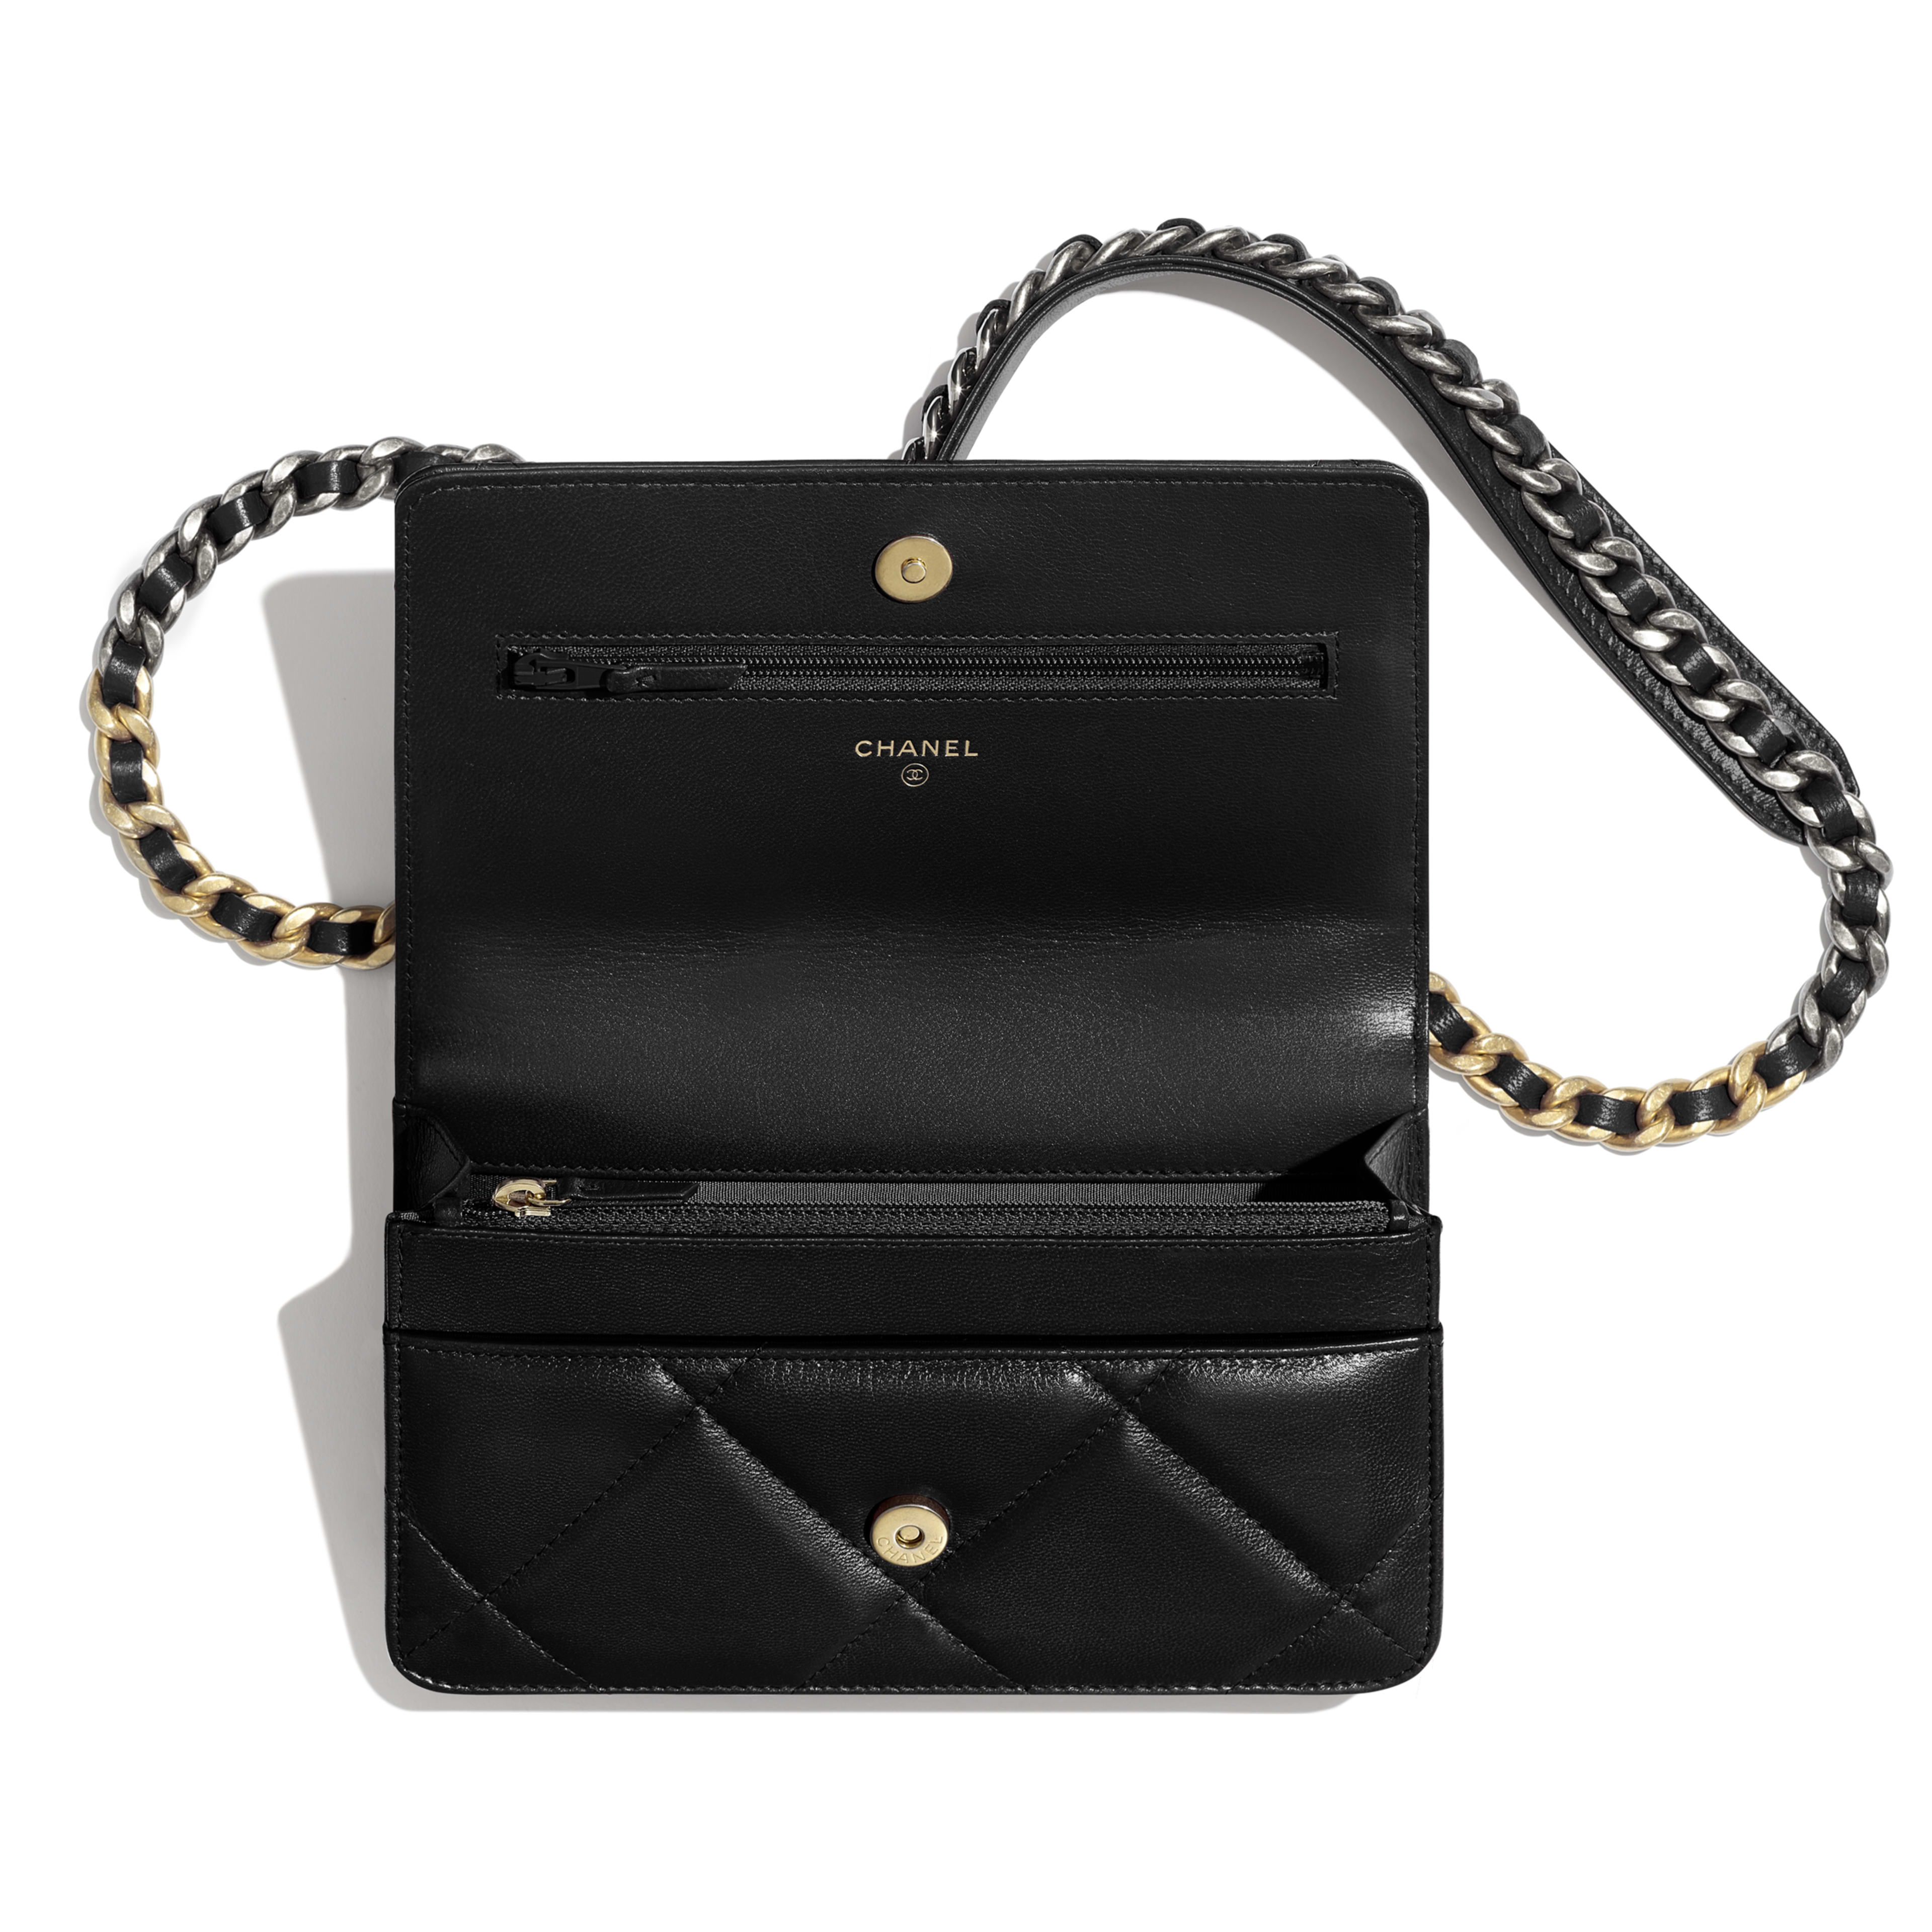 CHANEL 19 Wallet on Chain - Black - Goatskin, Gold-Tone, Silver-Tone & Ruthenium-Finish Metal - Other view - see full sized version